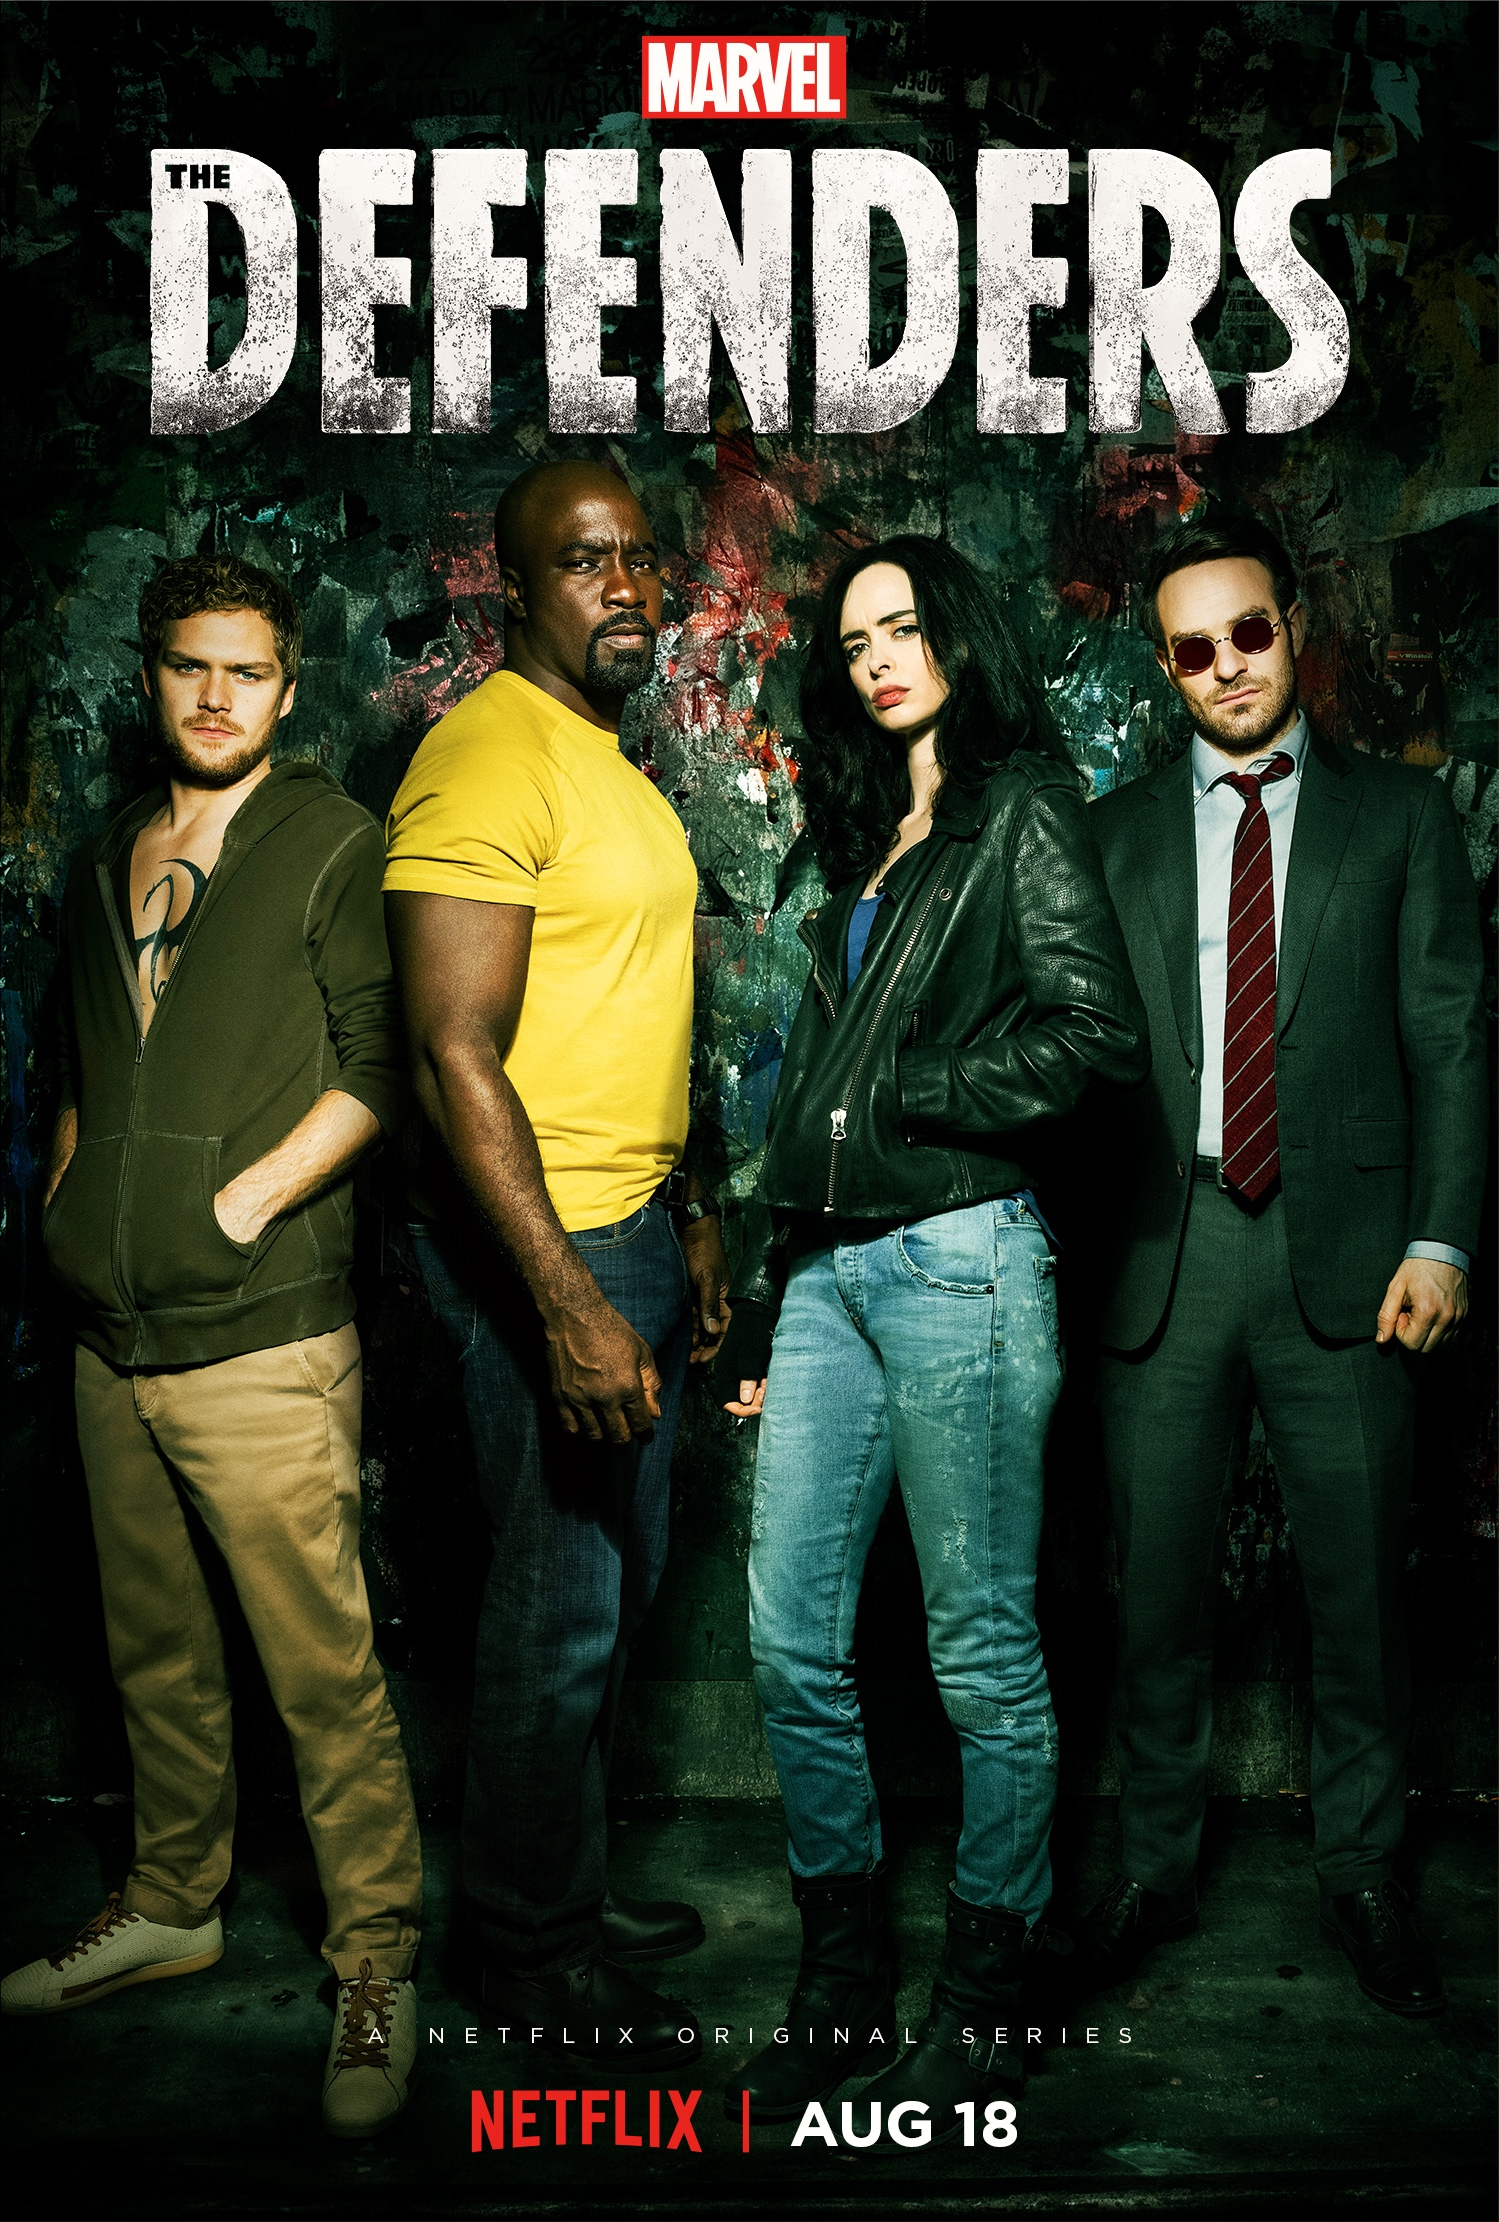 The Defenders Season 1 COMPLETE WEBRip 480p, 720p, 1080p & 4K-2160p